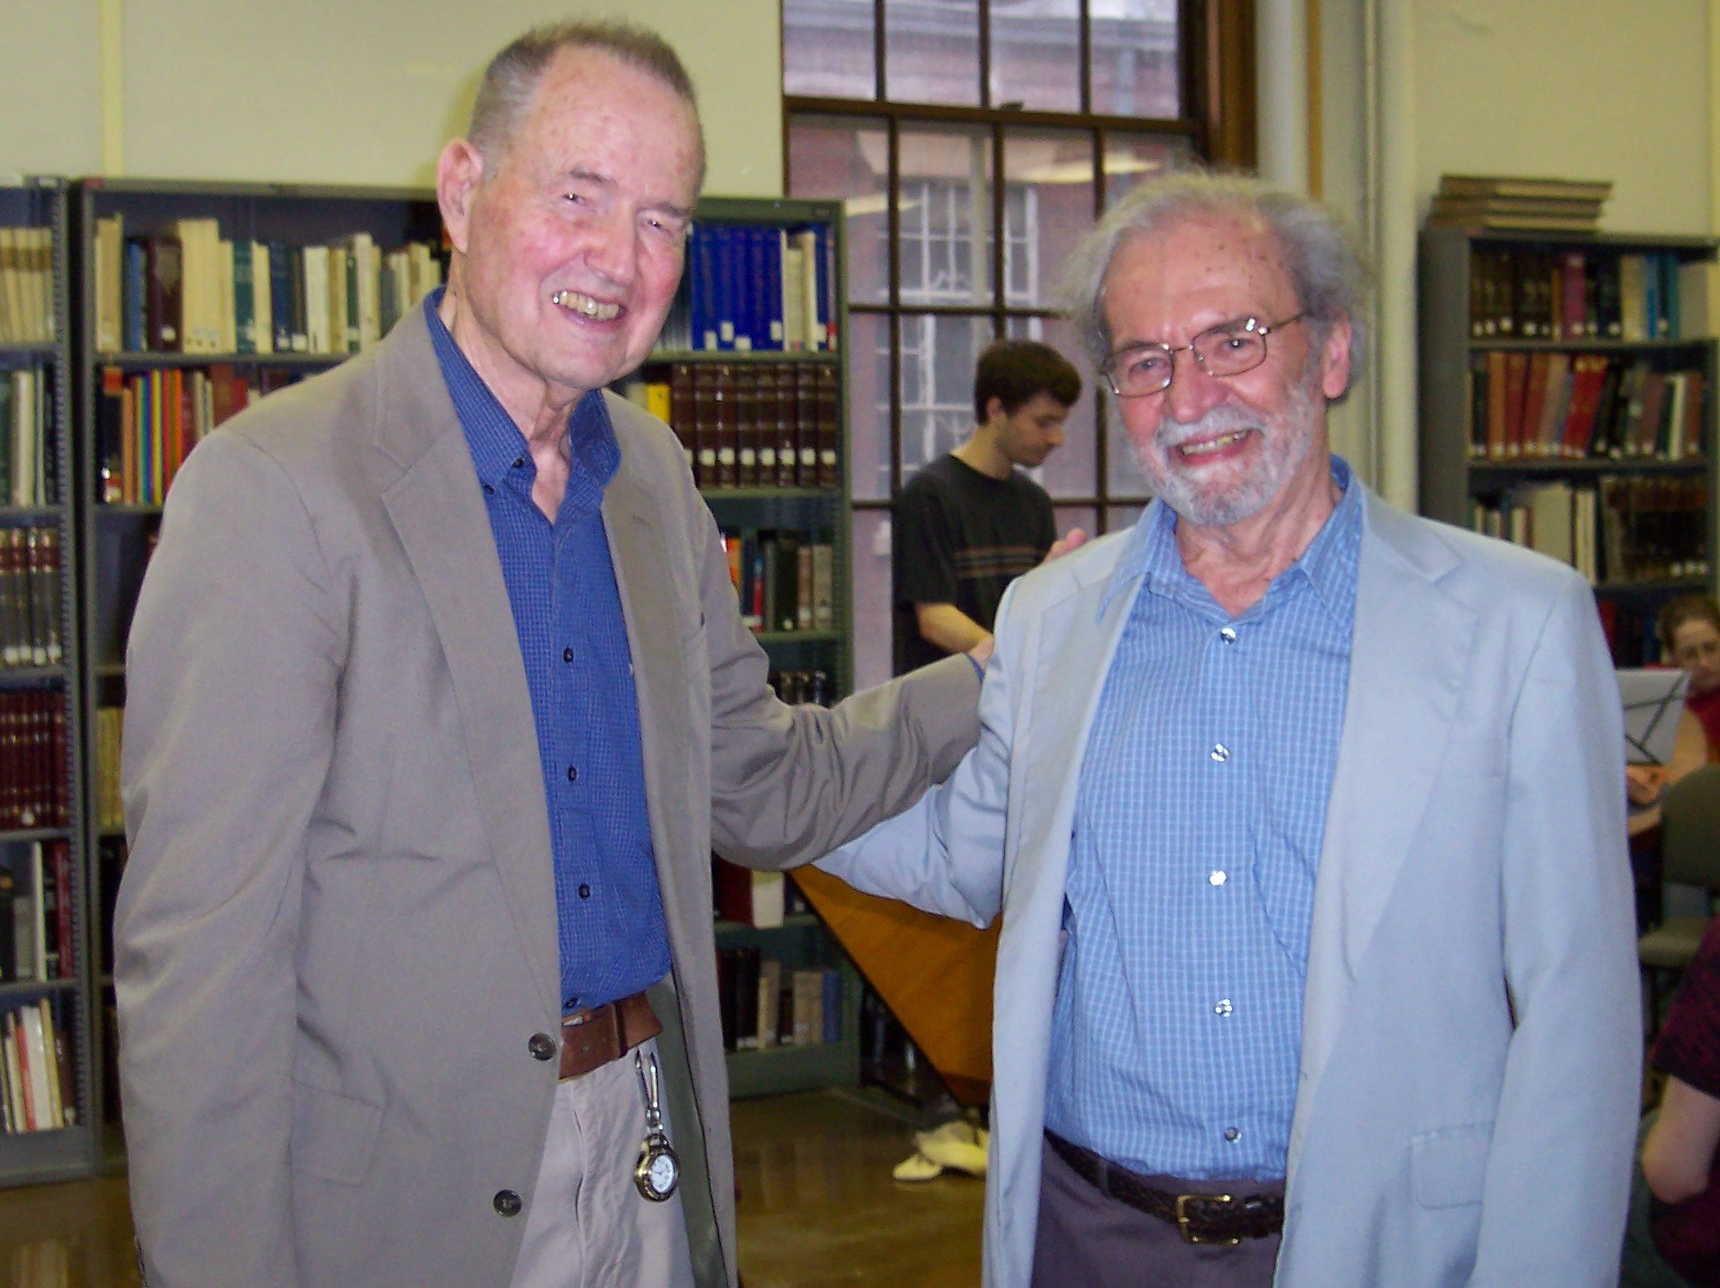 Ralph Fisher and Larry Miller in the Slavic Library celebrating Fisher's 90th birthday, April 5, 2010. Photographed by Alisa Kolodizner.